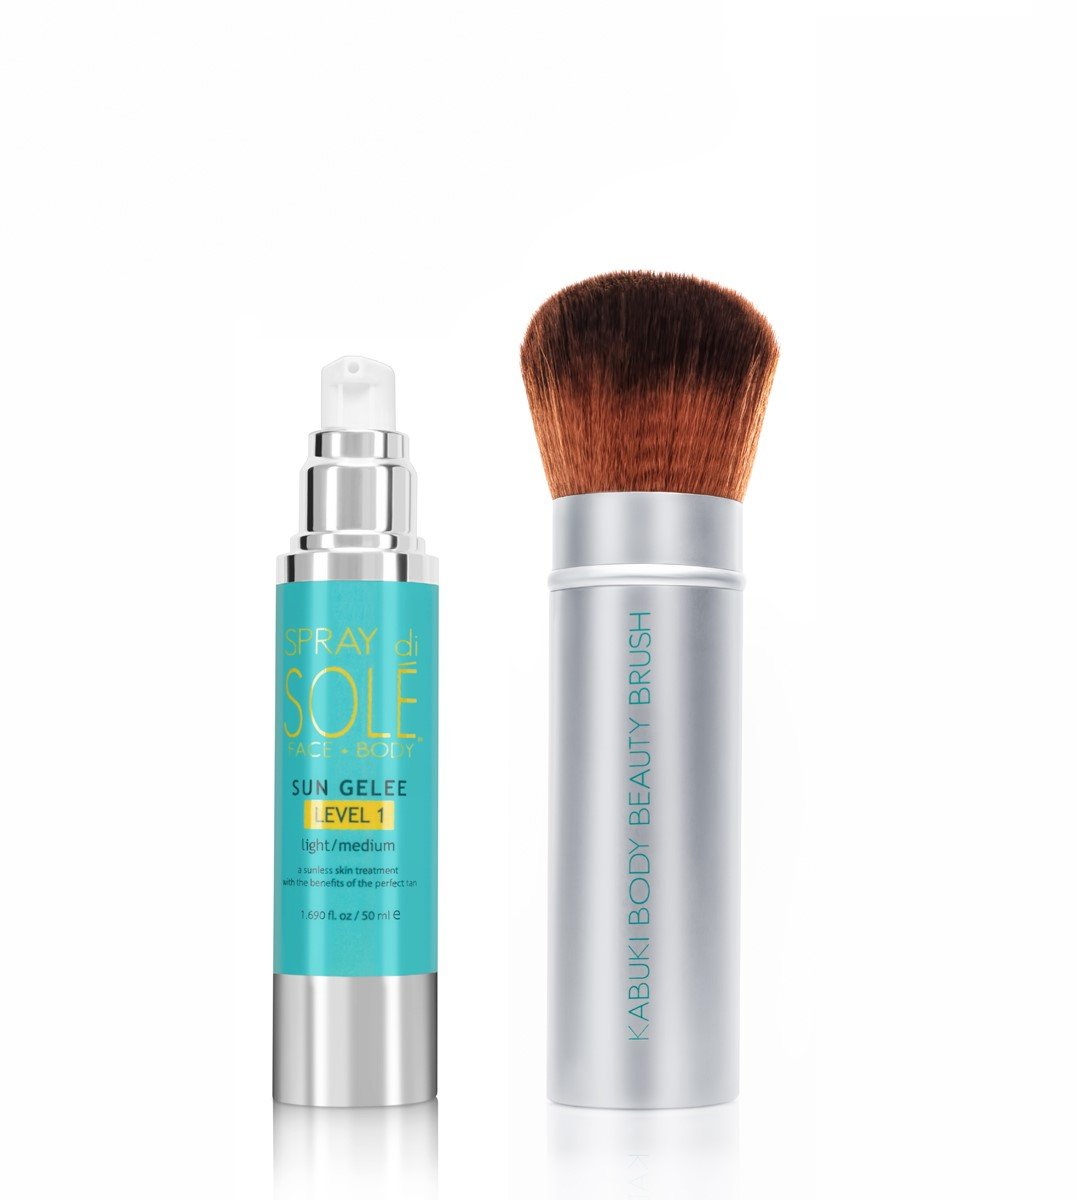 Spray Di Sole Sun Gelee with Kabuki Body Brush - Organic and Natural Ingredients Sunless Self Tanning Lotion for a Golden Buildable Light, Medium and Dark Gradual Tan for Face and Body